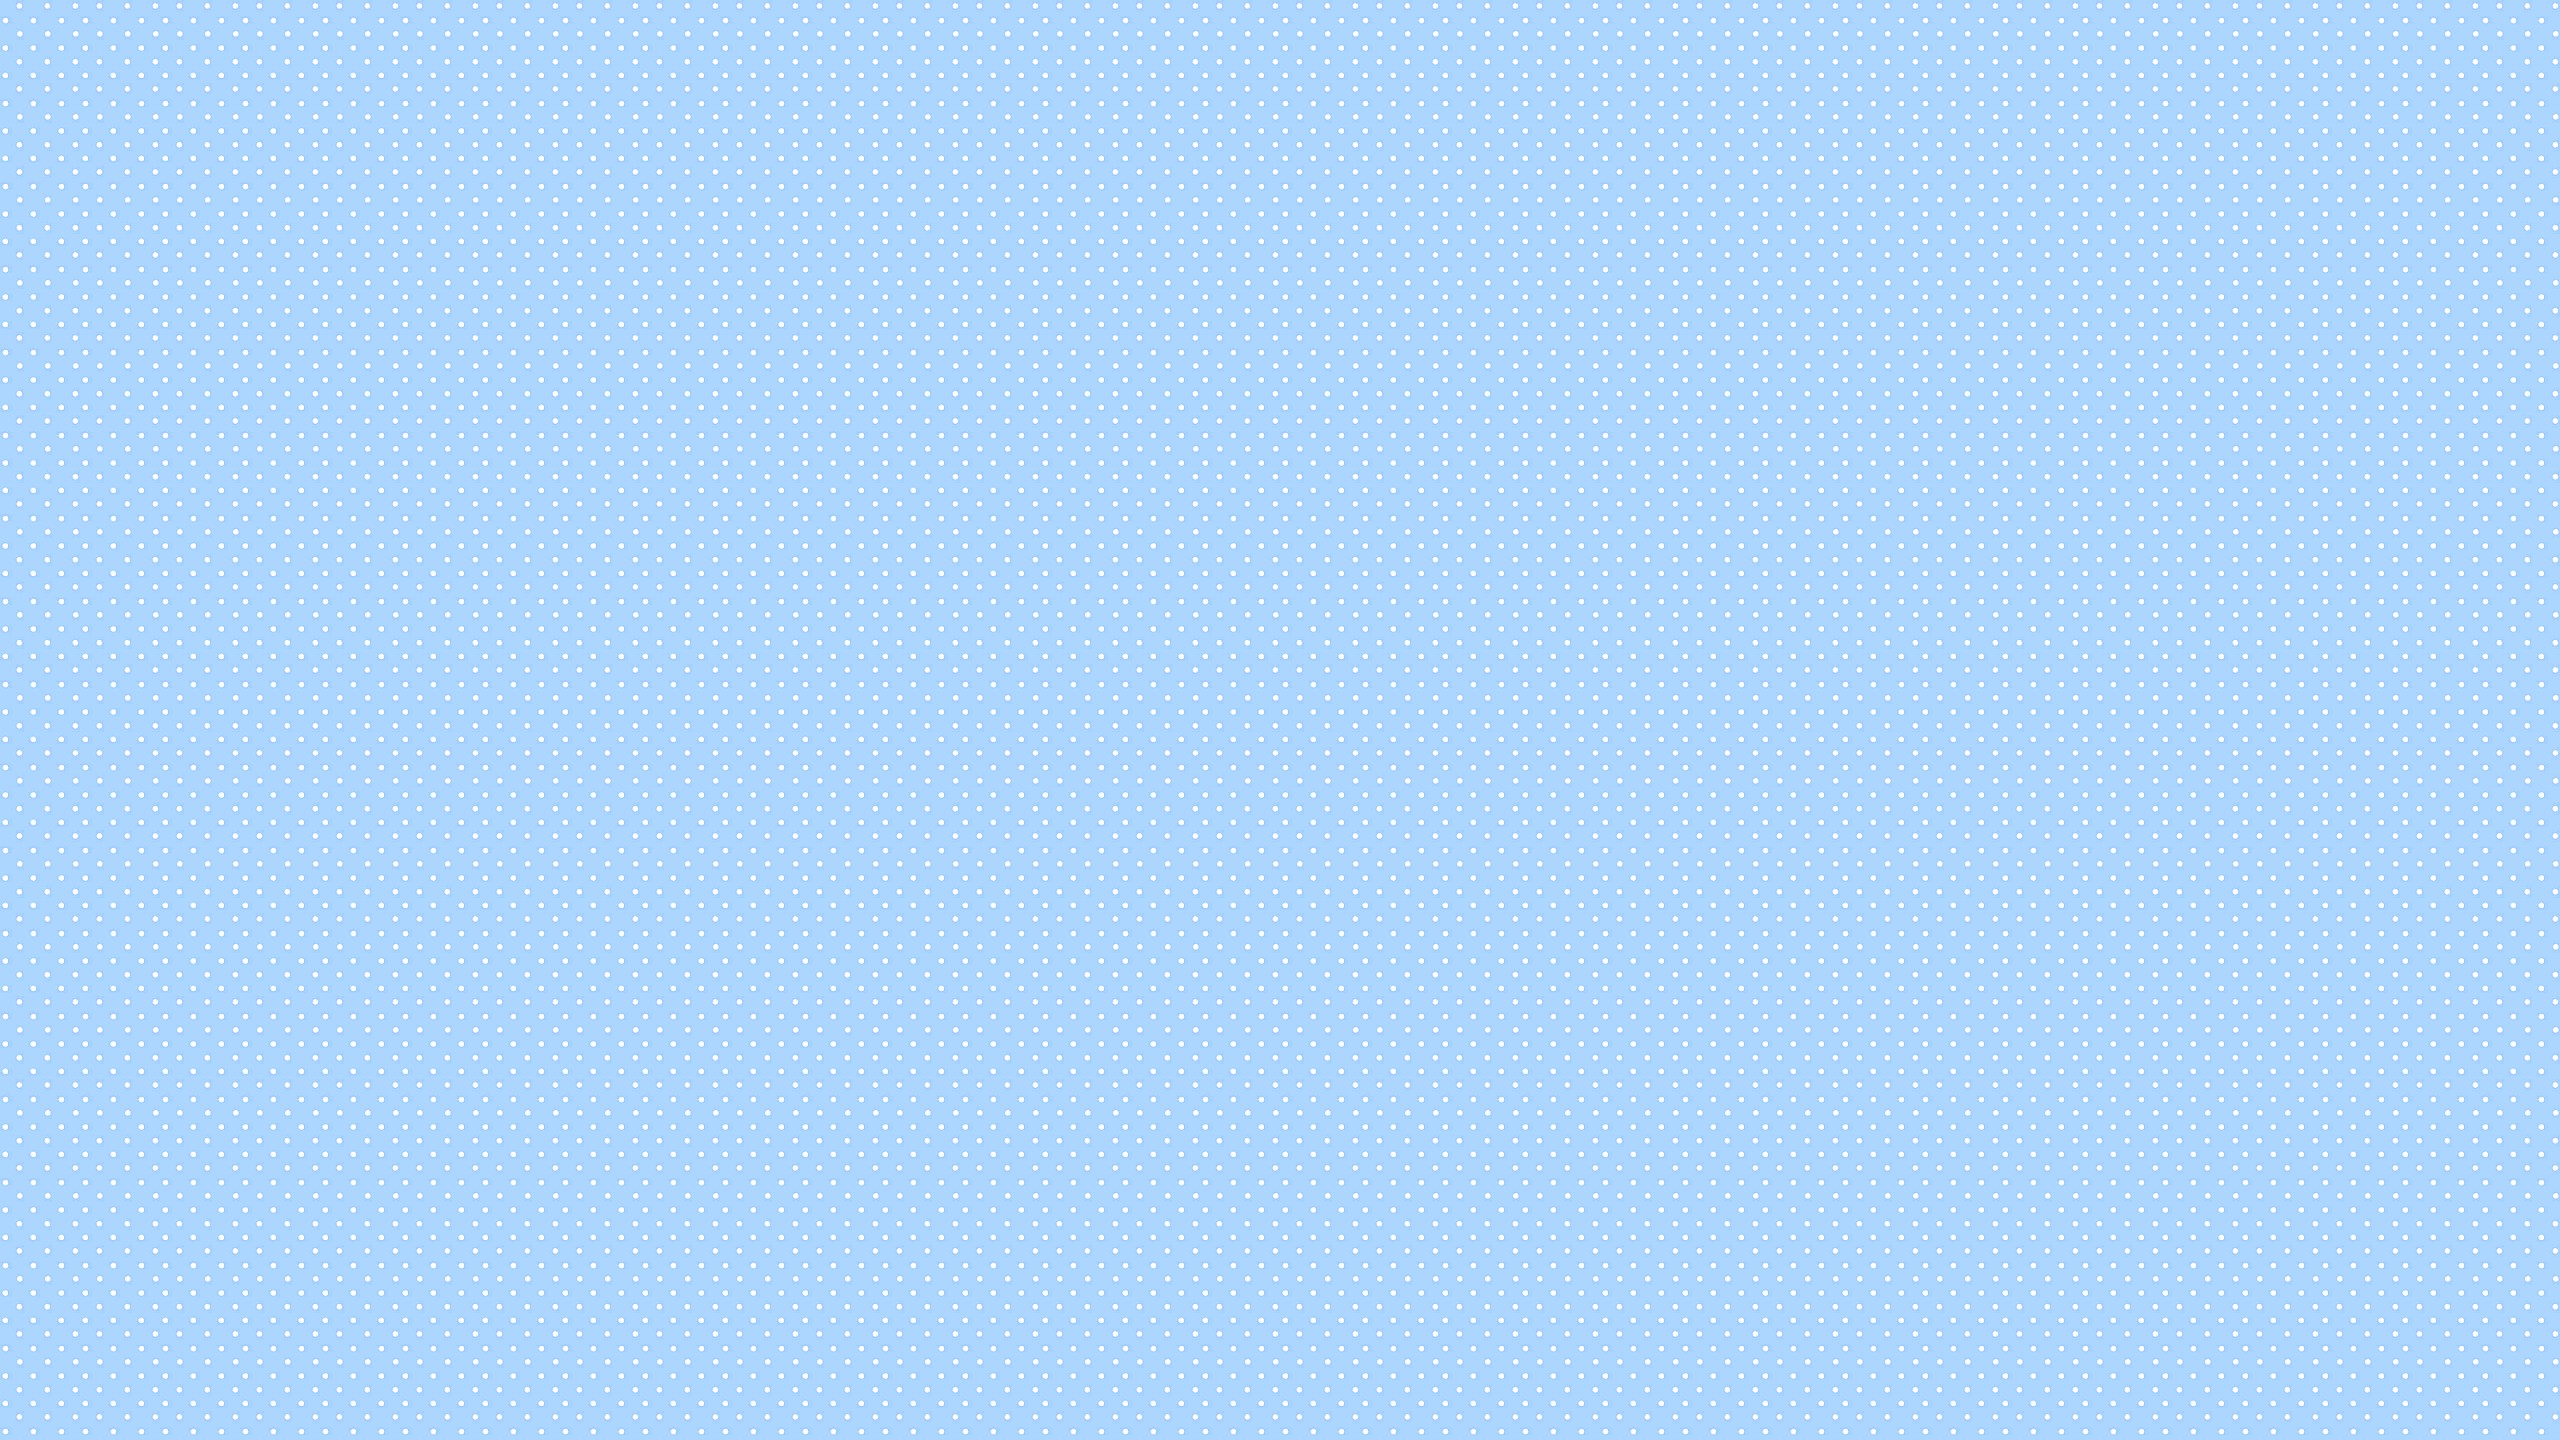 Pastel Blue Background 183 ① Download Free High Resolution